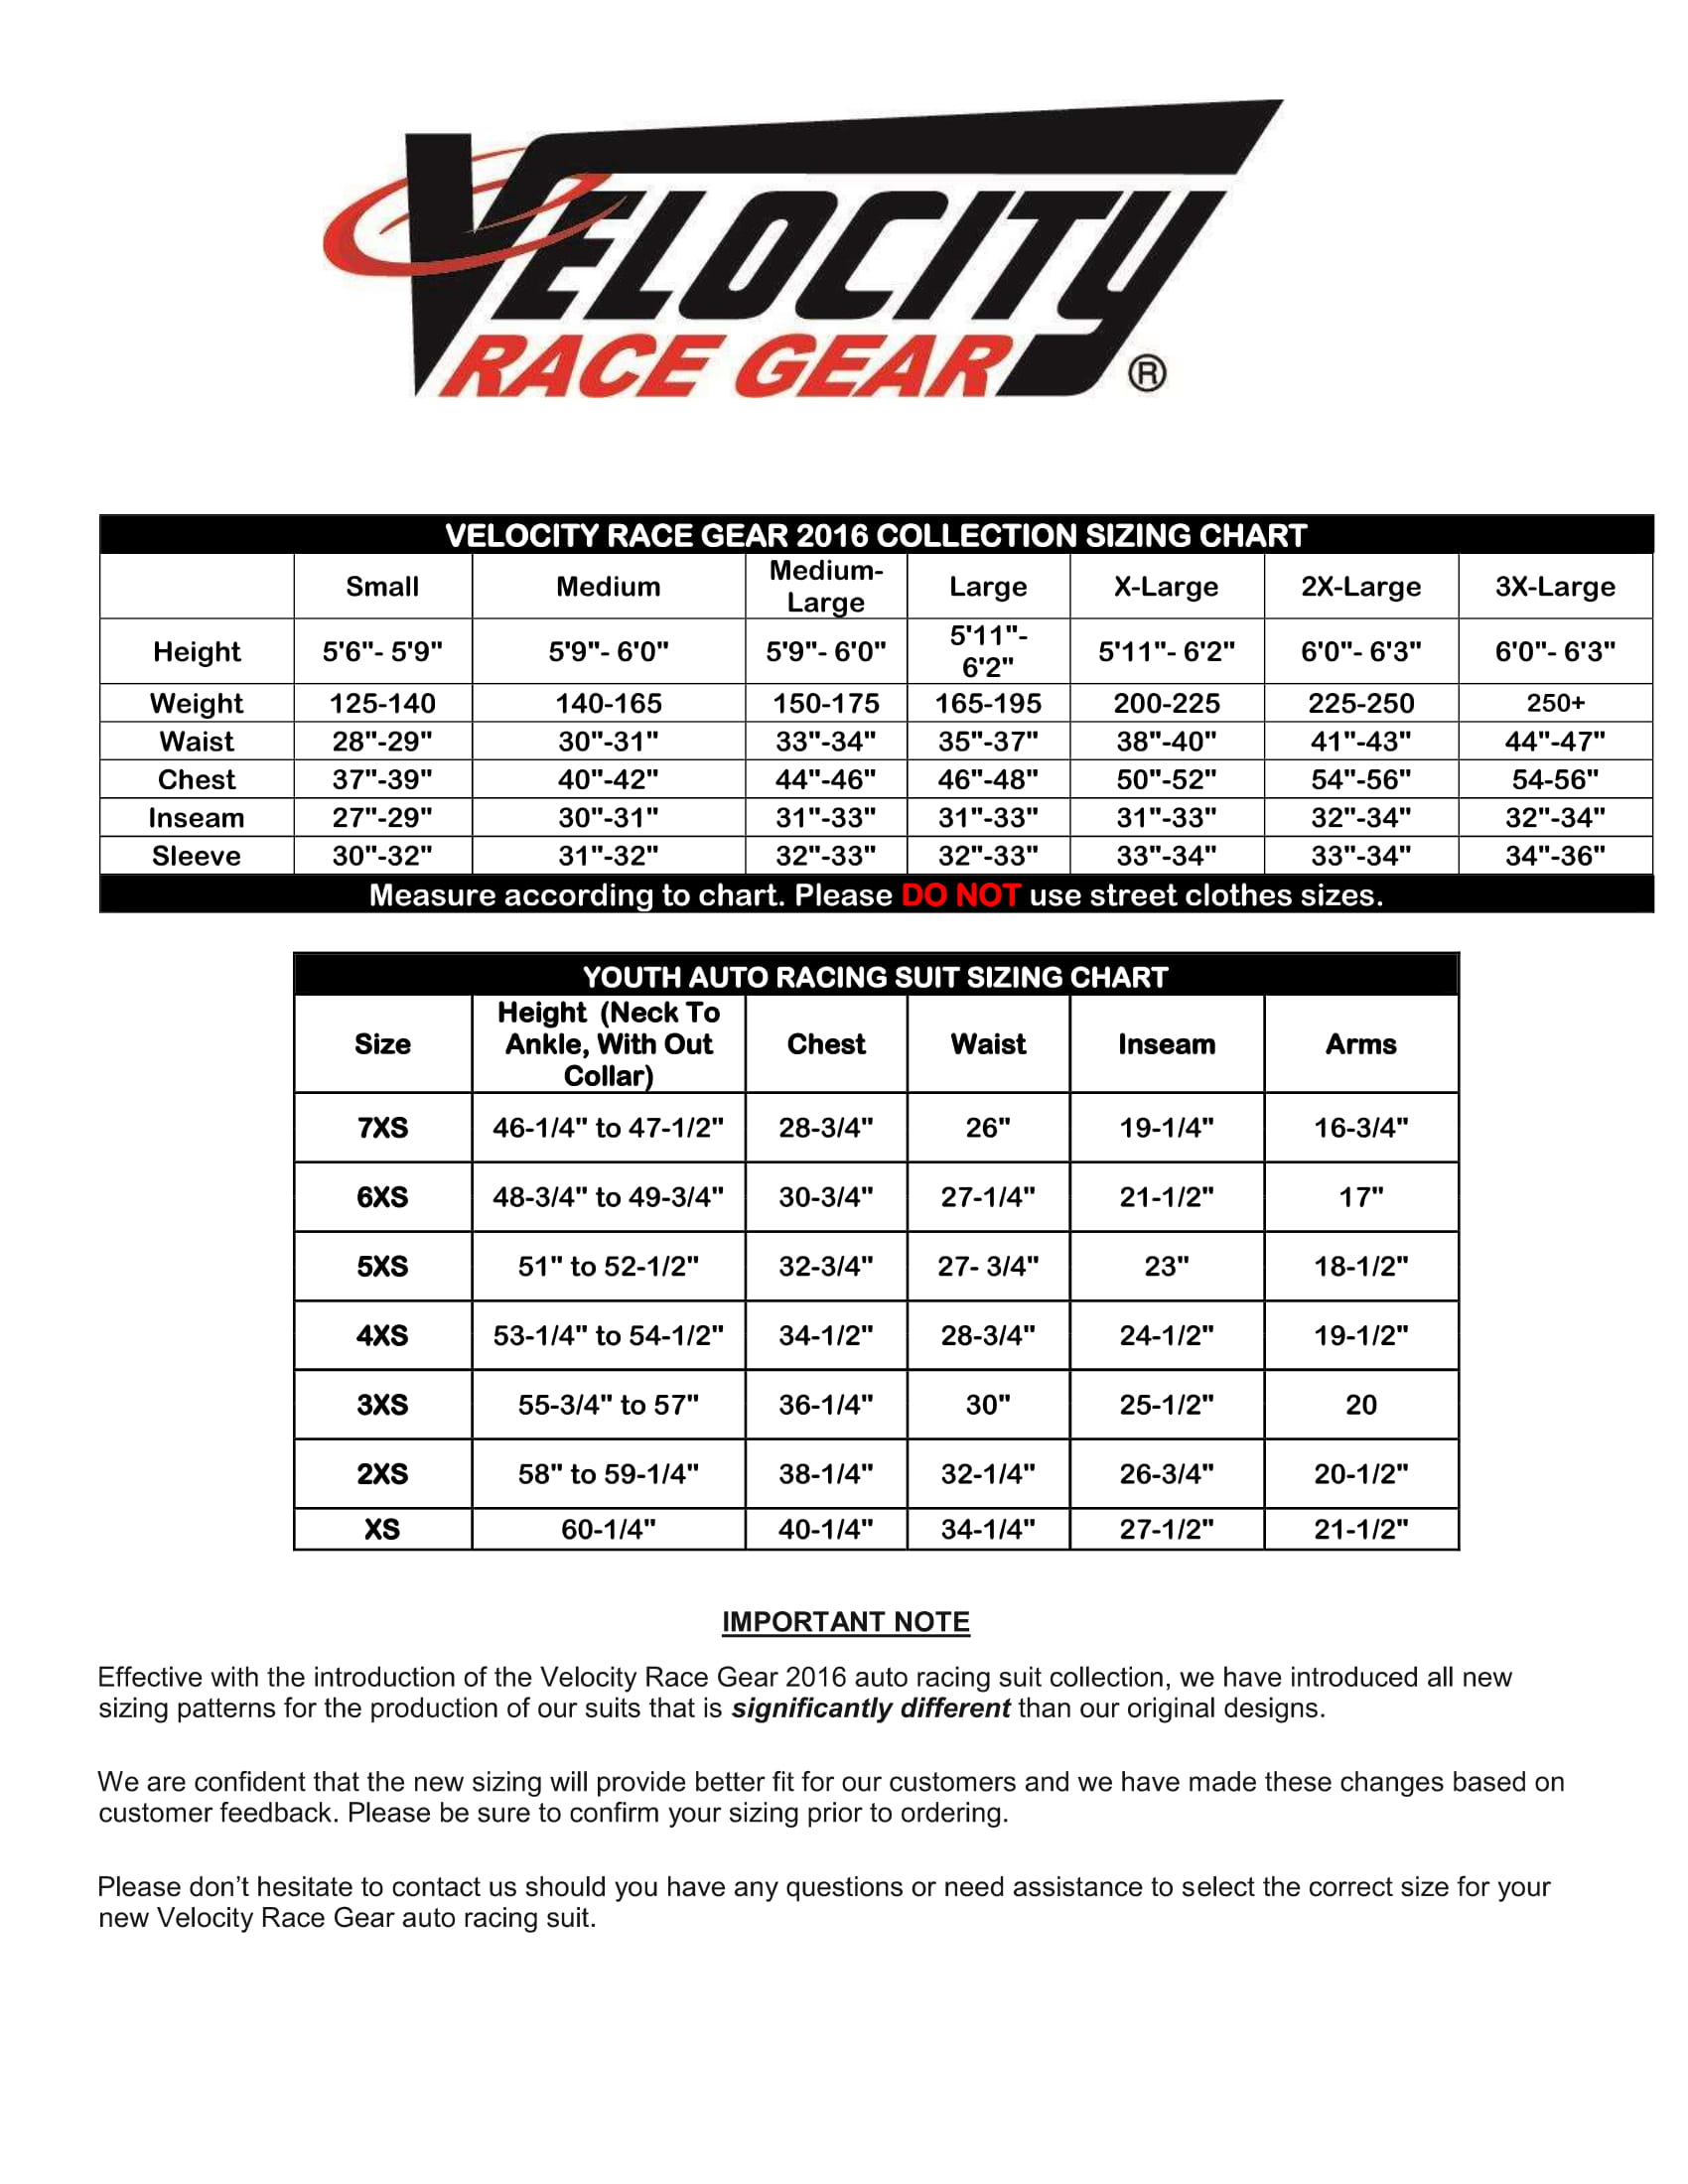 Velocity Auto Racing Suit Sizing Chart